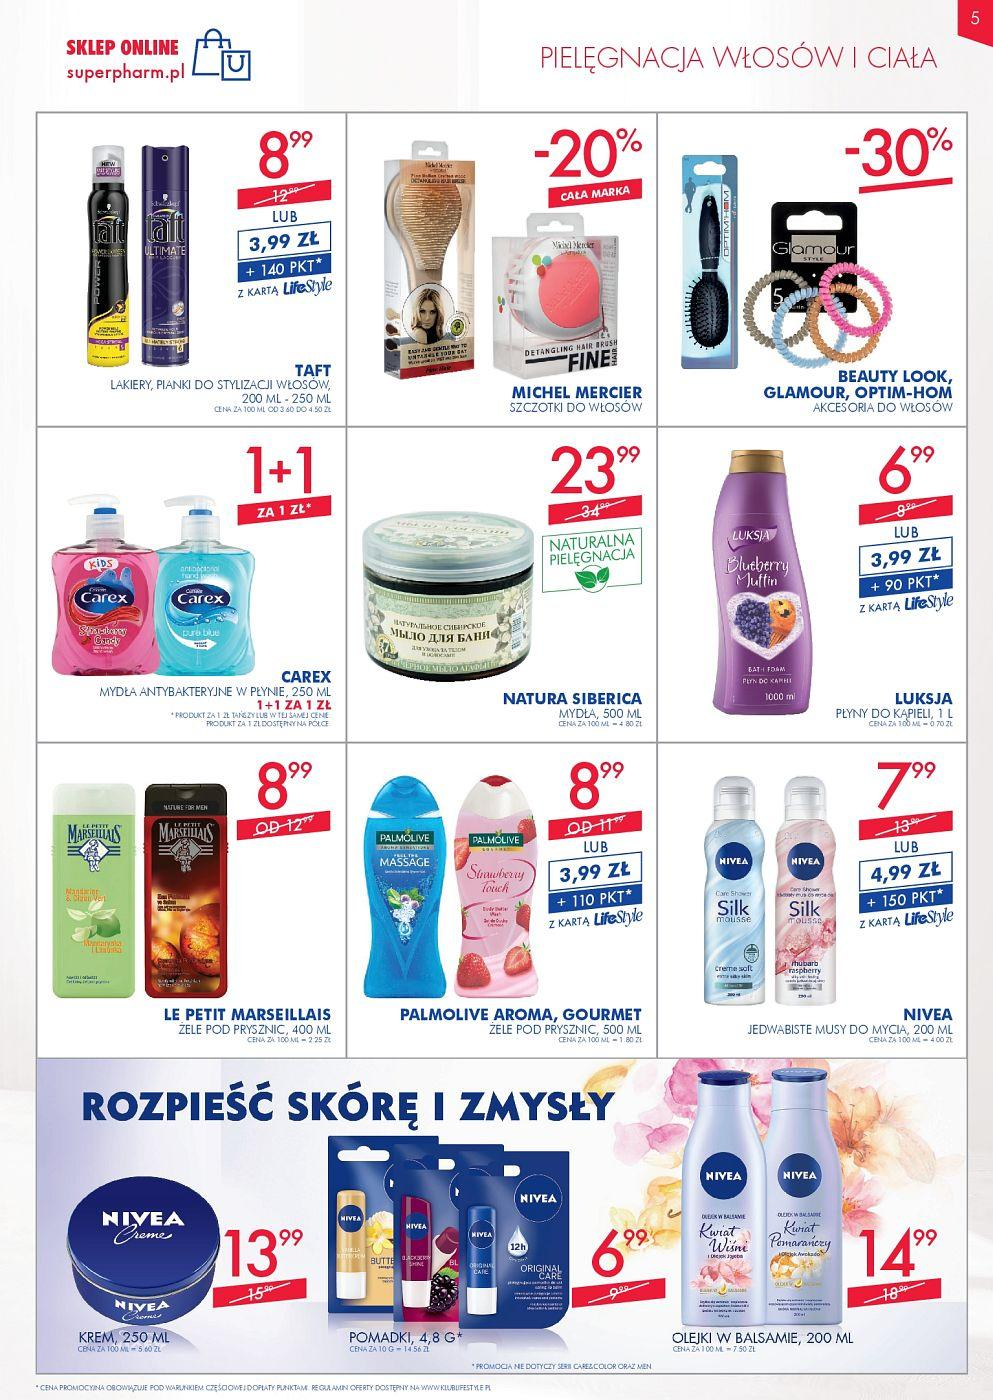 Gazetka promocyjna Superpharm do 12/09/2018 str.4